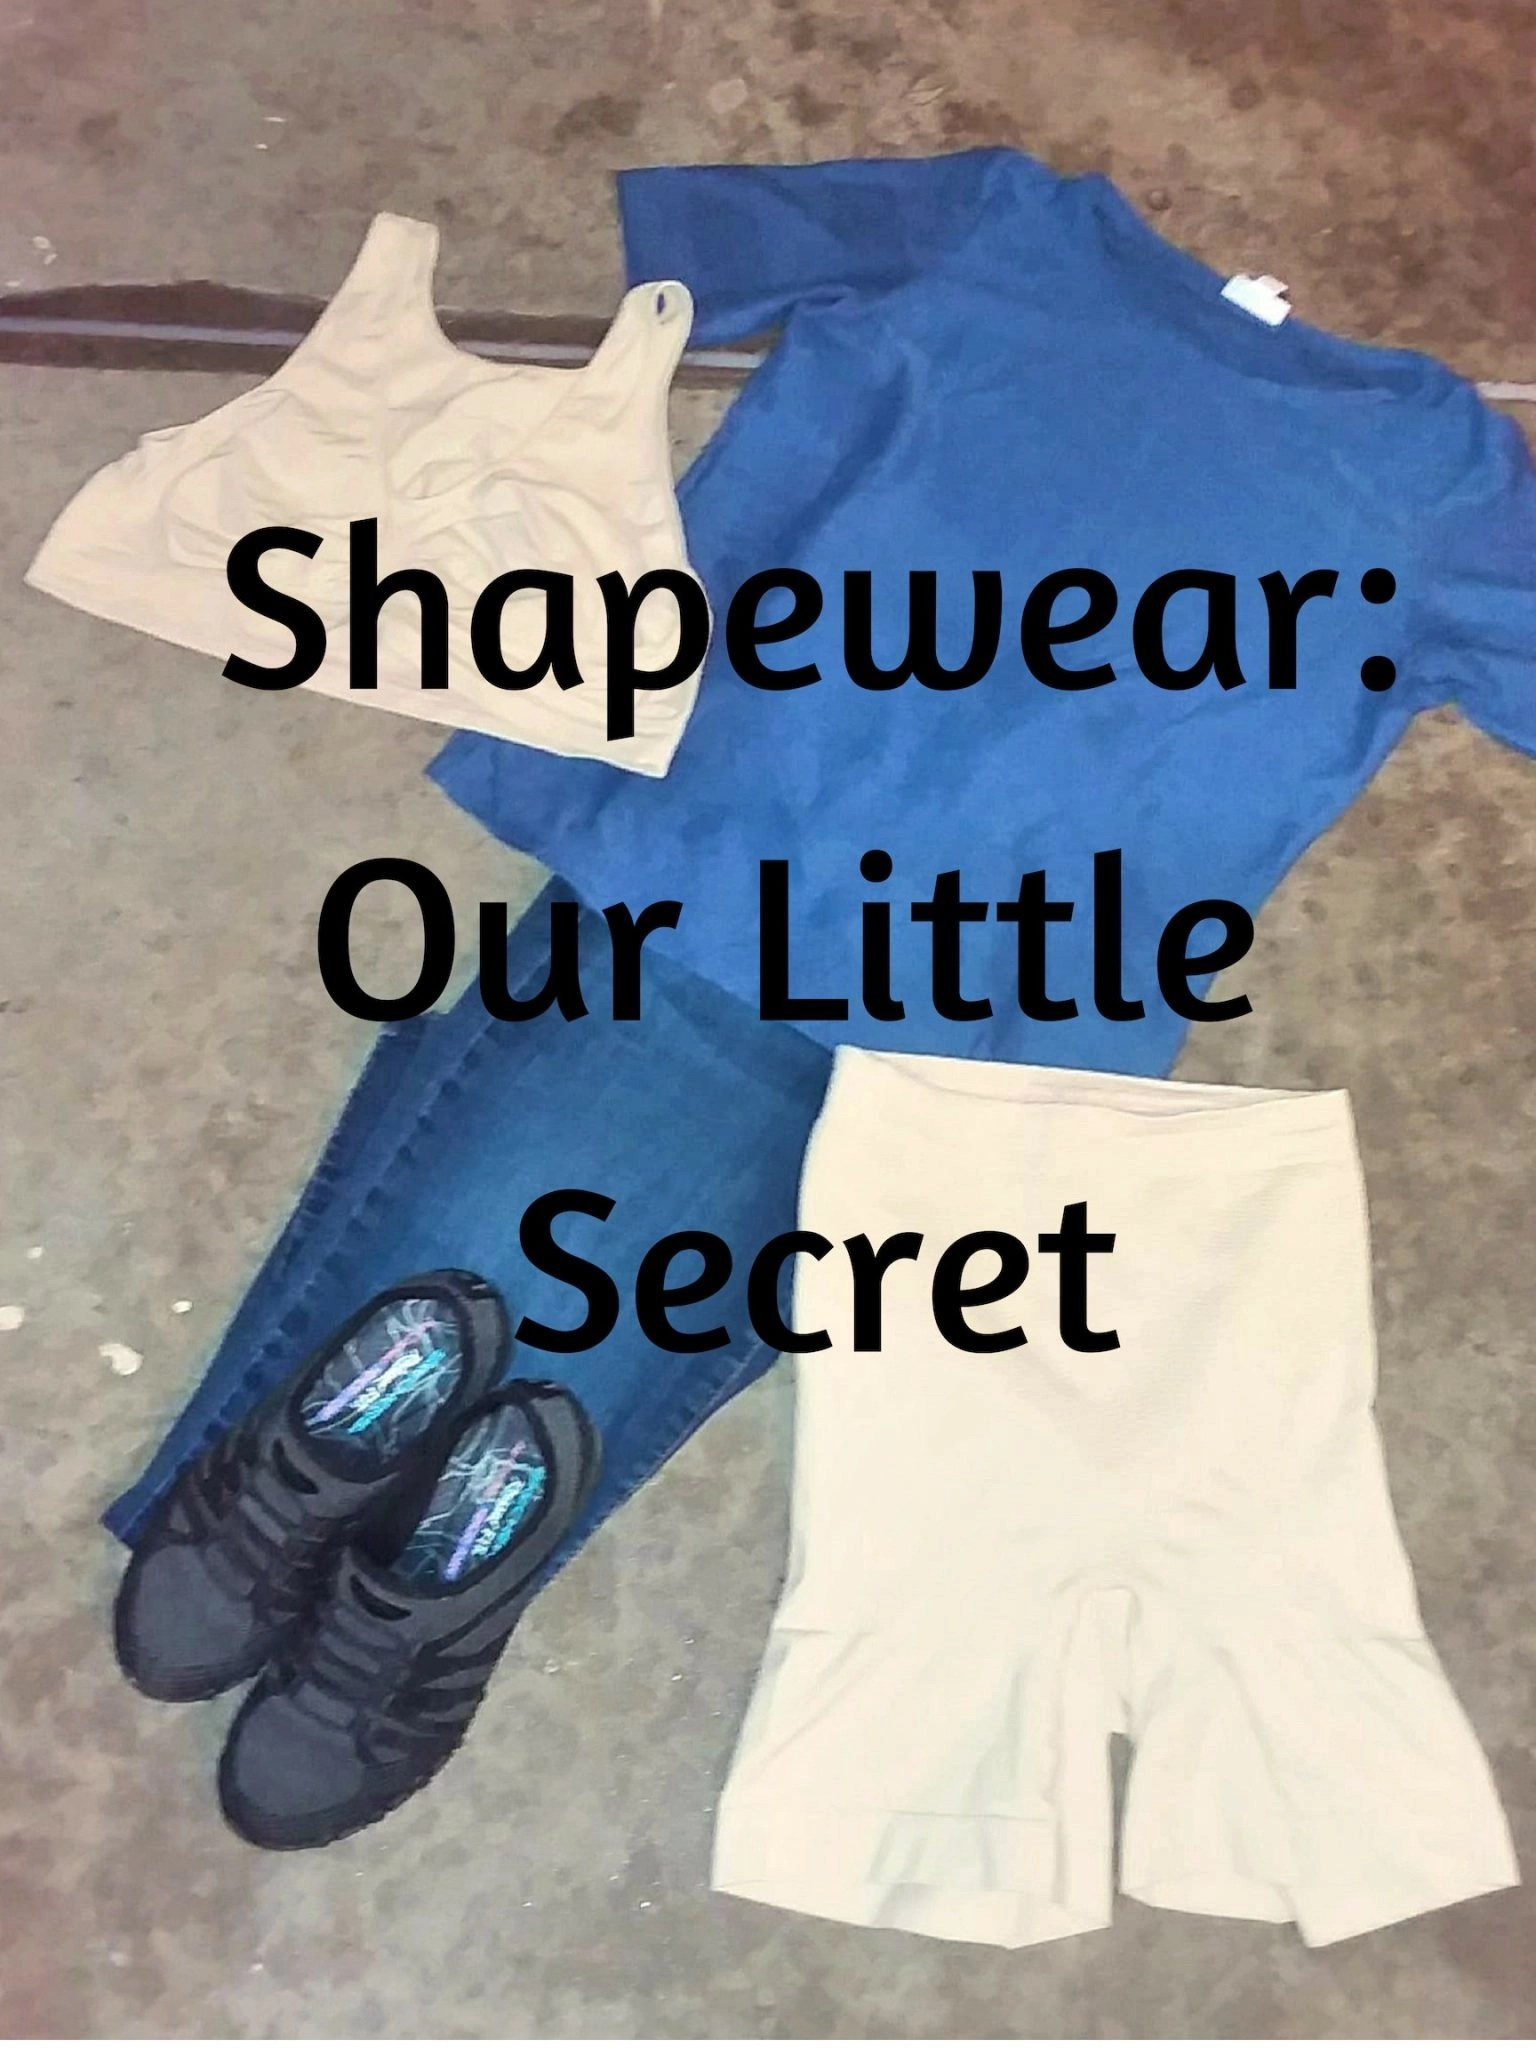 Shapewear Our Little Secret